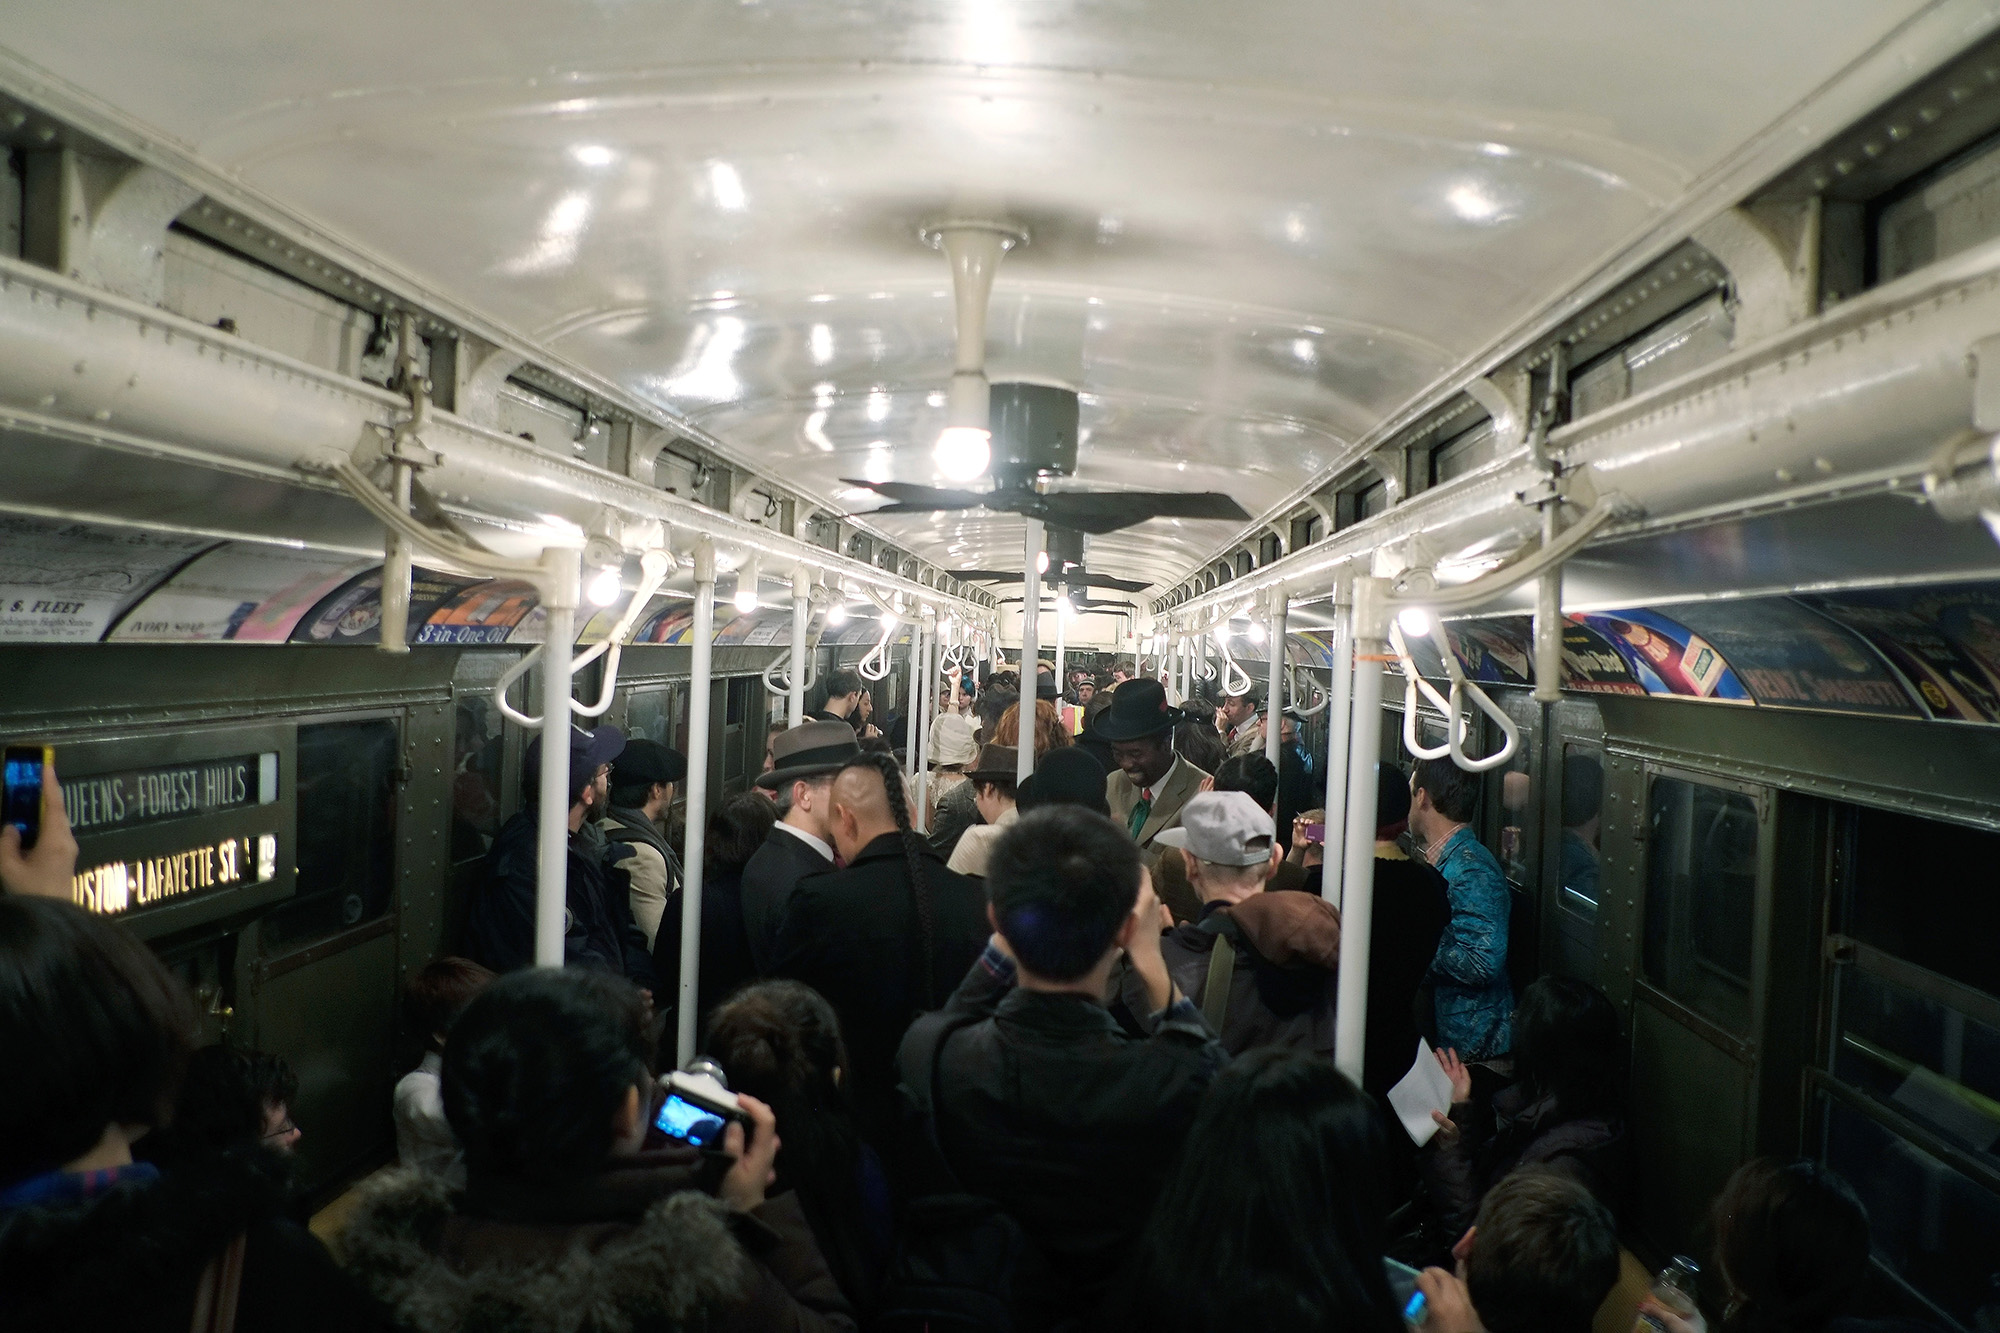 People crowd into a vintage New York City subway car as people dance to a live band on December 16, 2012 in New York City. The New York Metropolitan Transportation Authority (MTA) runs vintage subway trains from the 1930's-1970's each Sunday along the M train route from Manhattan to Queens through the first of the year.  (Photo by Preston Rescigno/Getty Images)